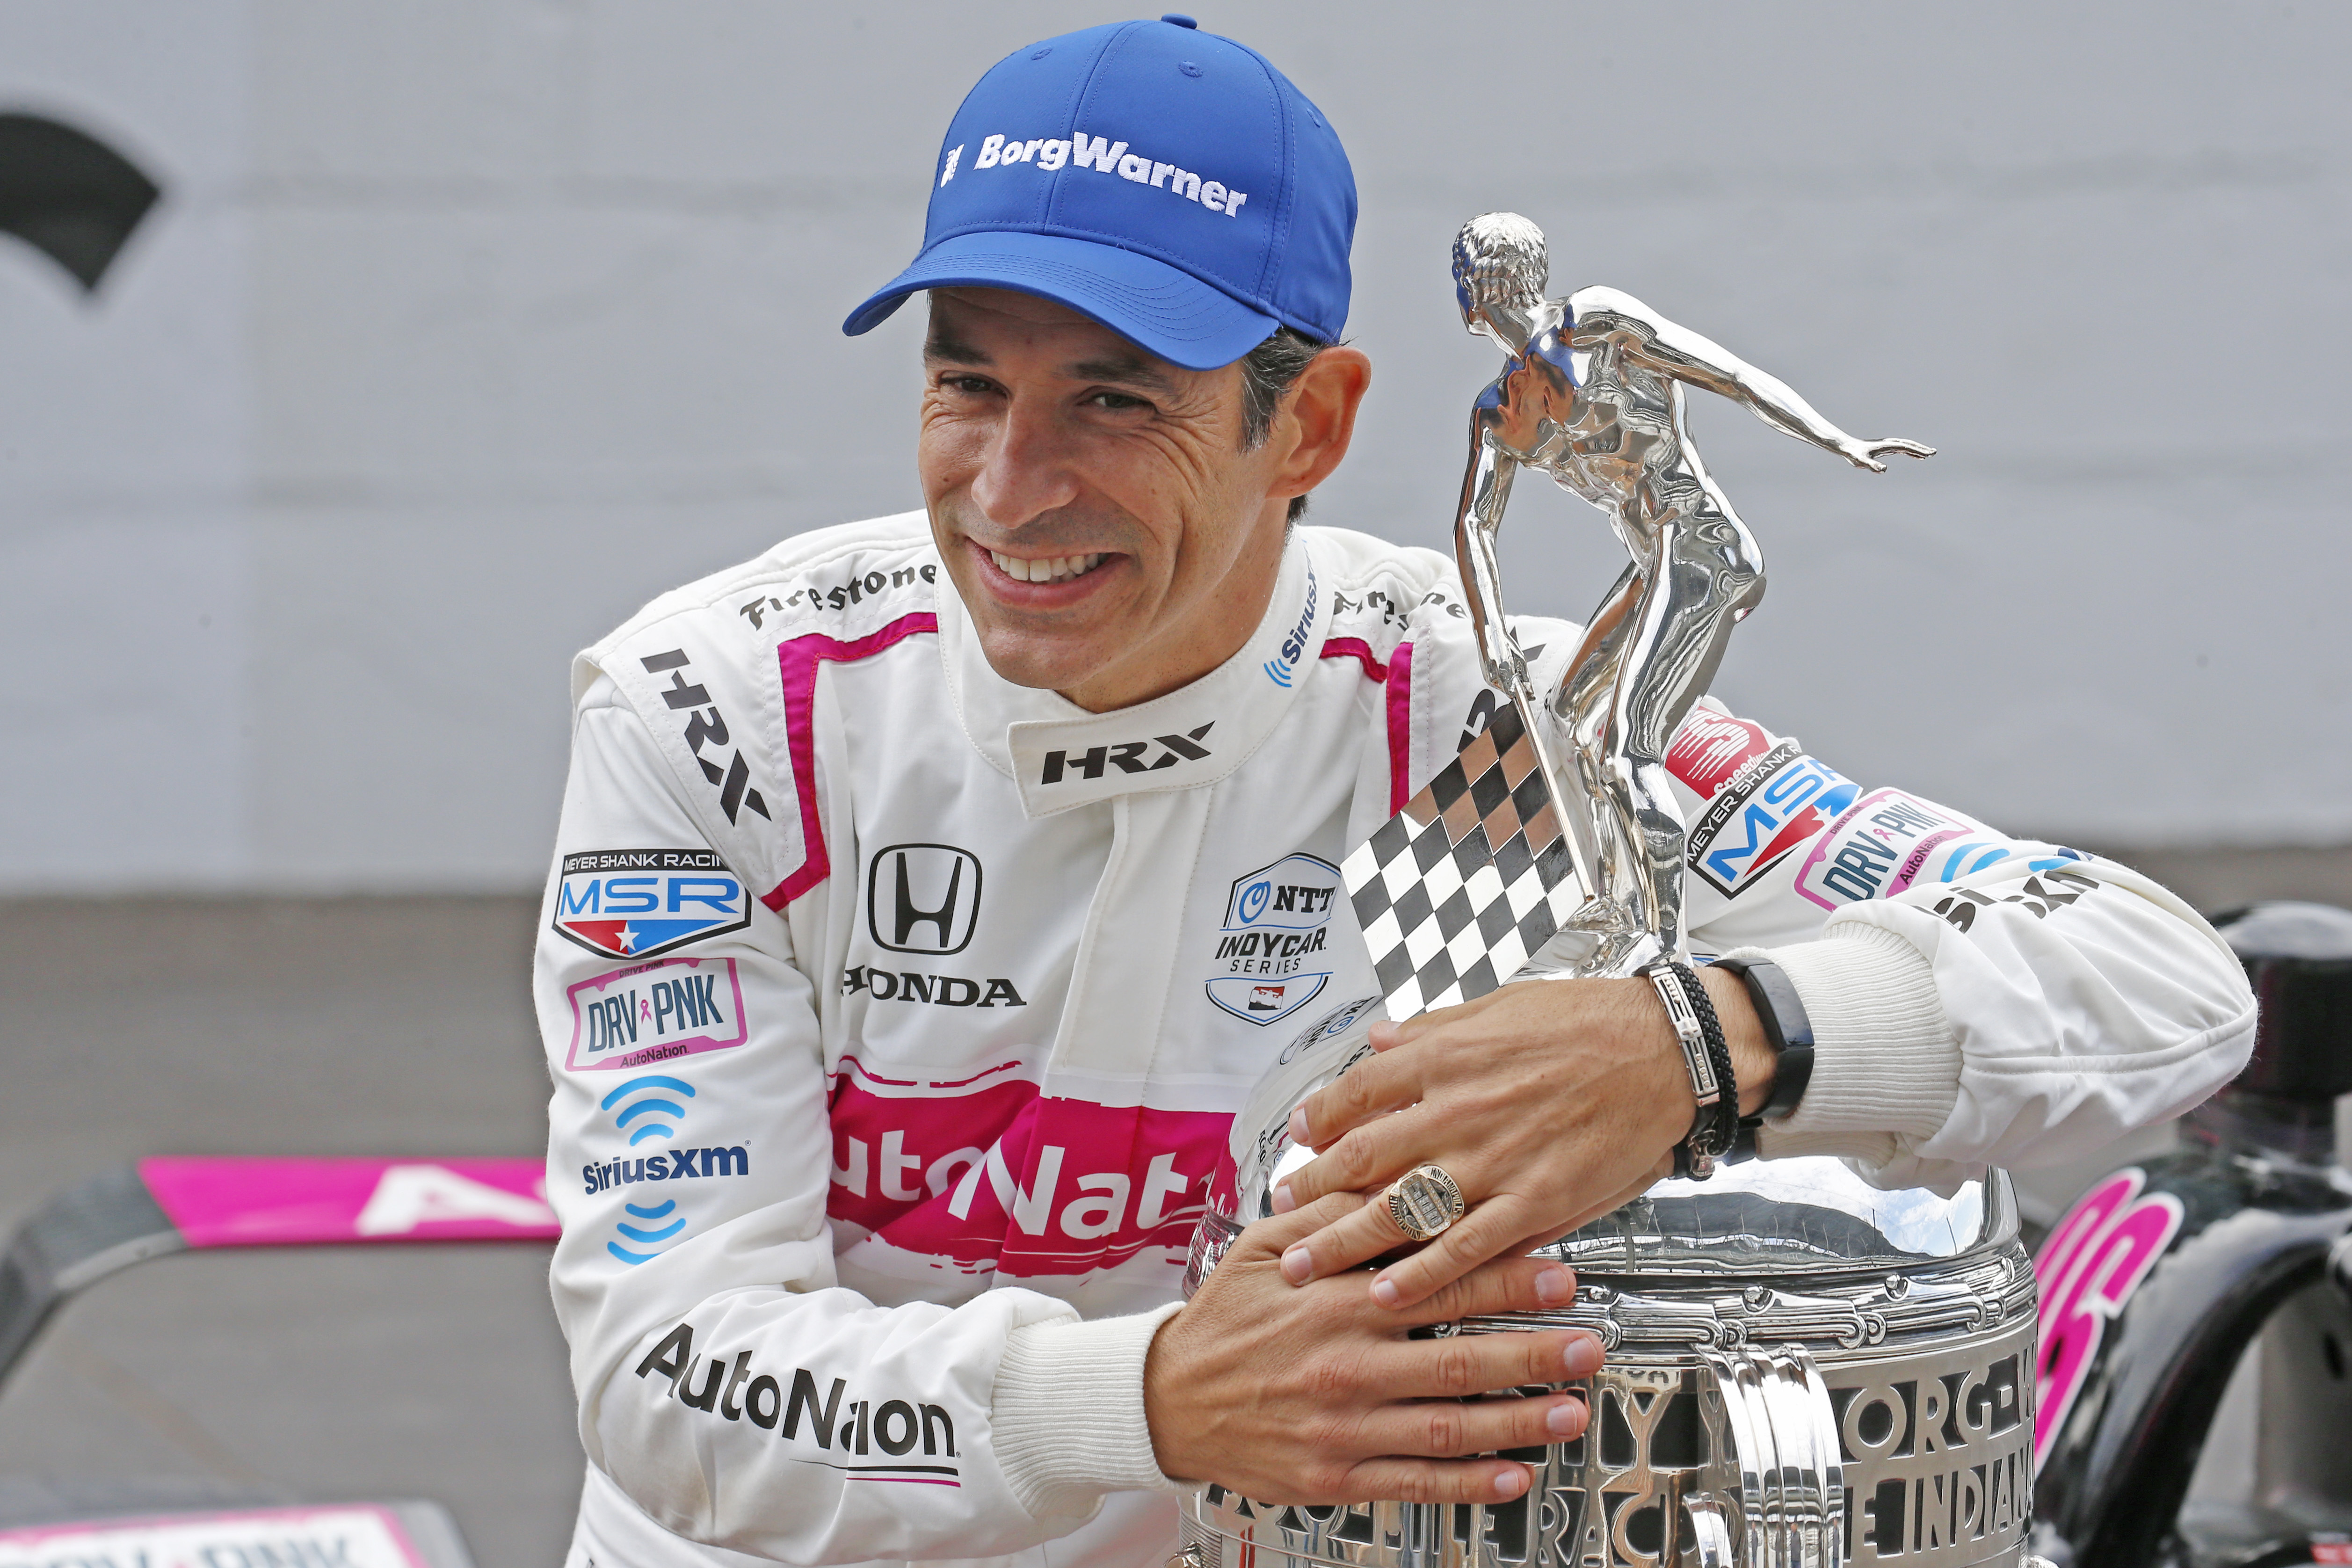 Helio Castroneves cunning Indy